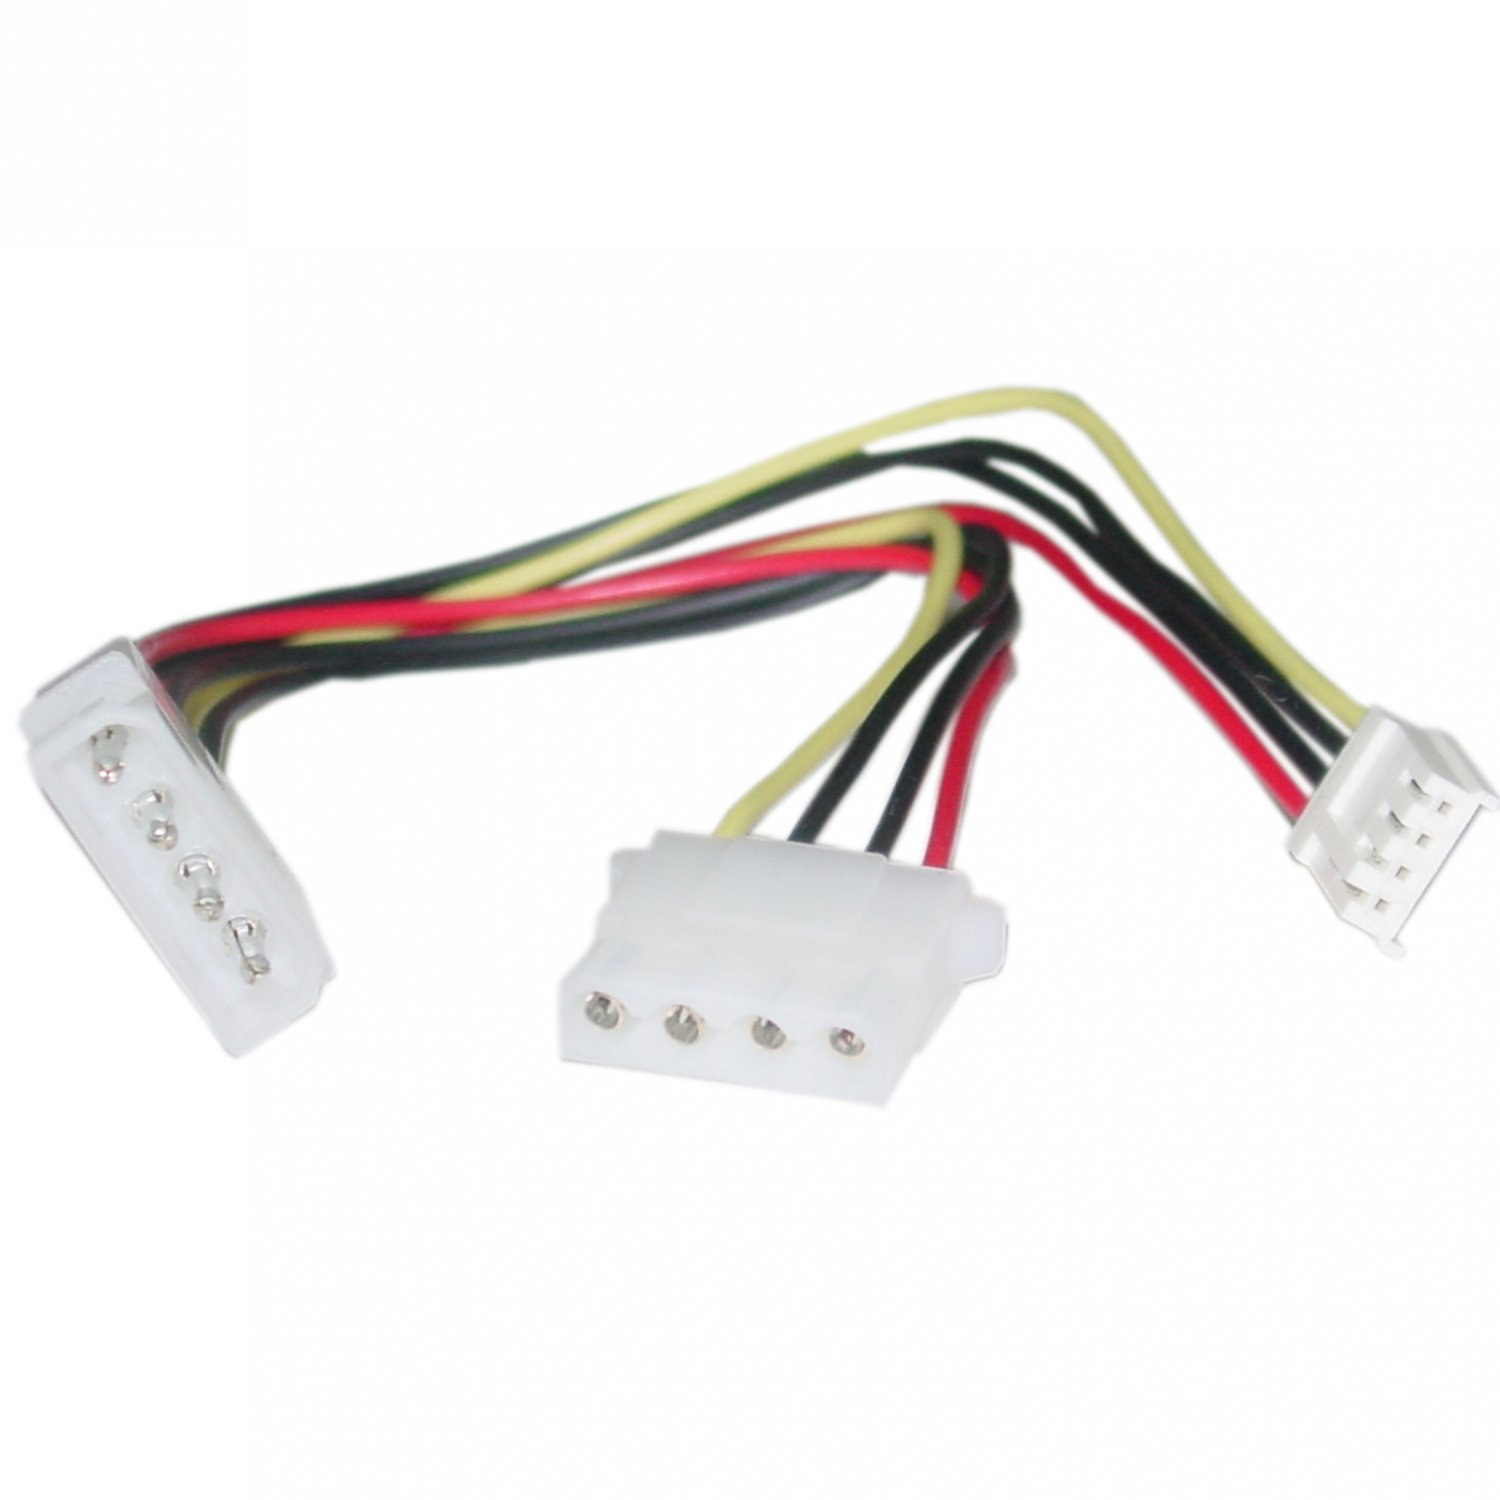 4 Pin Molex to Floppy and 4 Pin Molex Power Y Cable, 5.25 inch Male to 5.25 inch Female and 3.5 inch